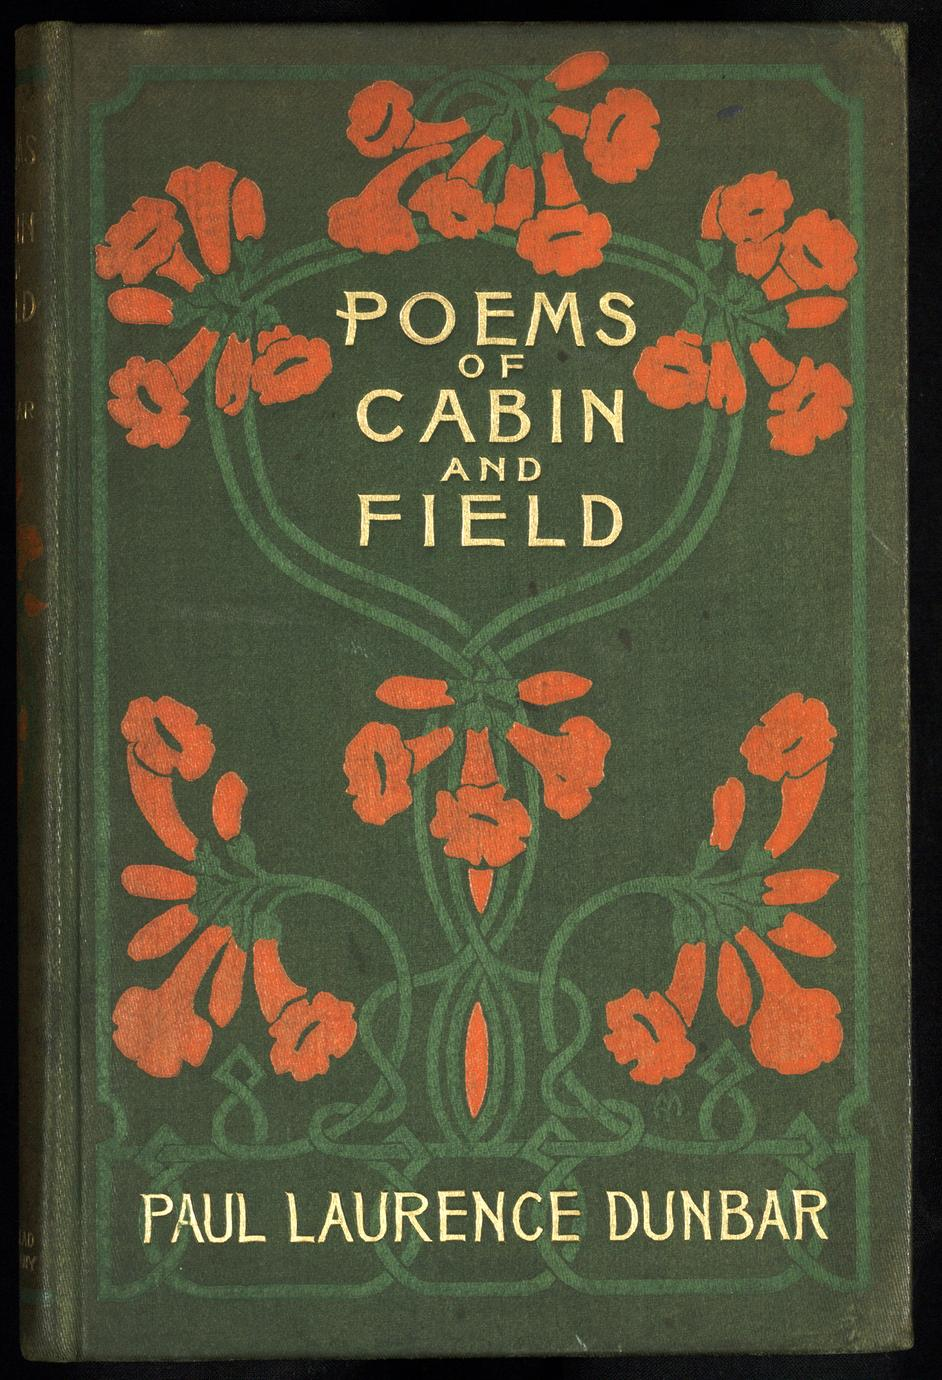 Poems of cabin and field (1 of 3)